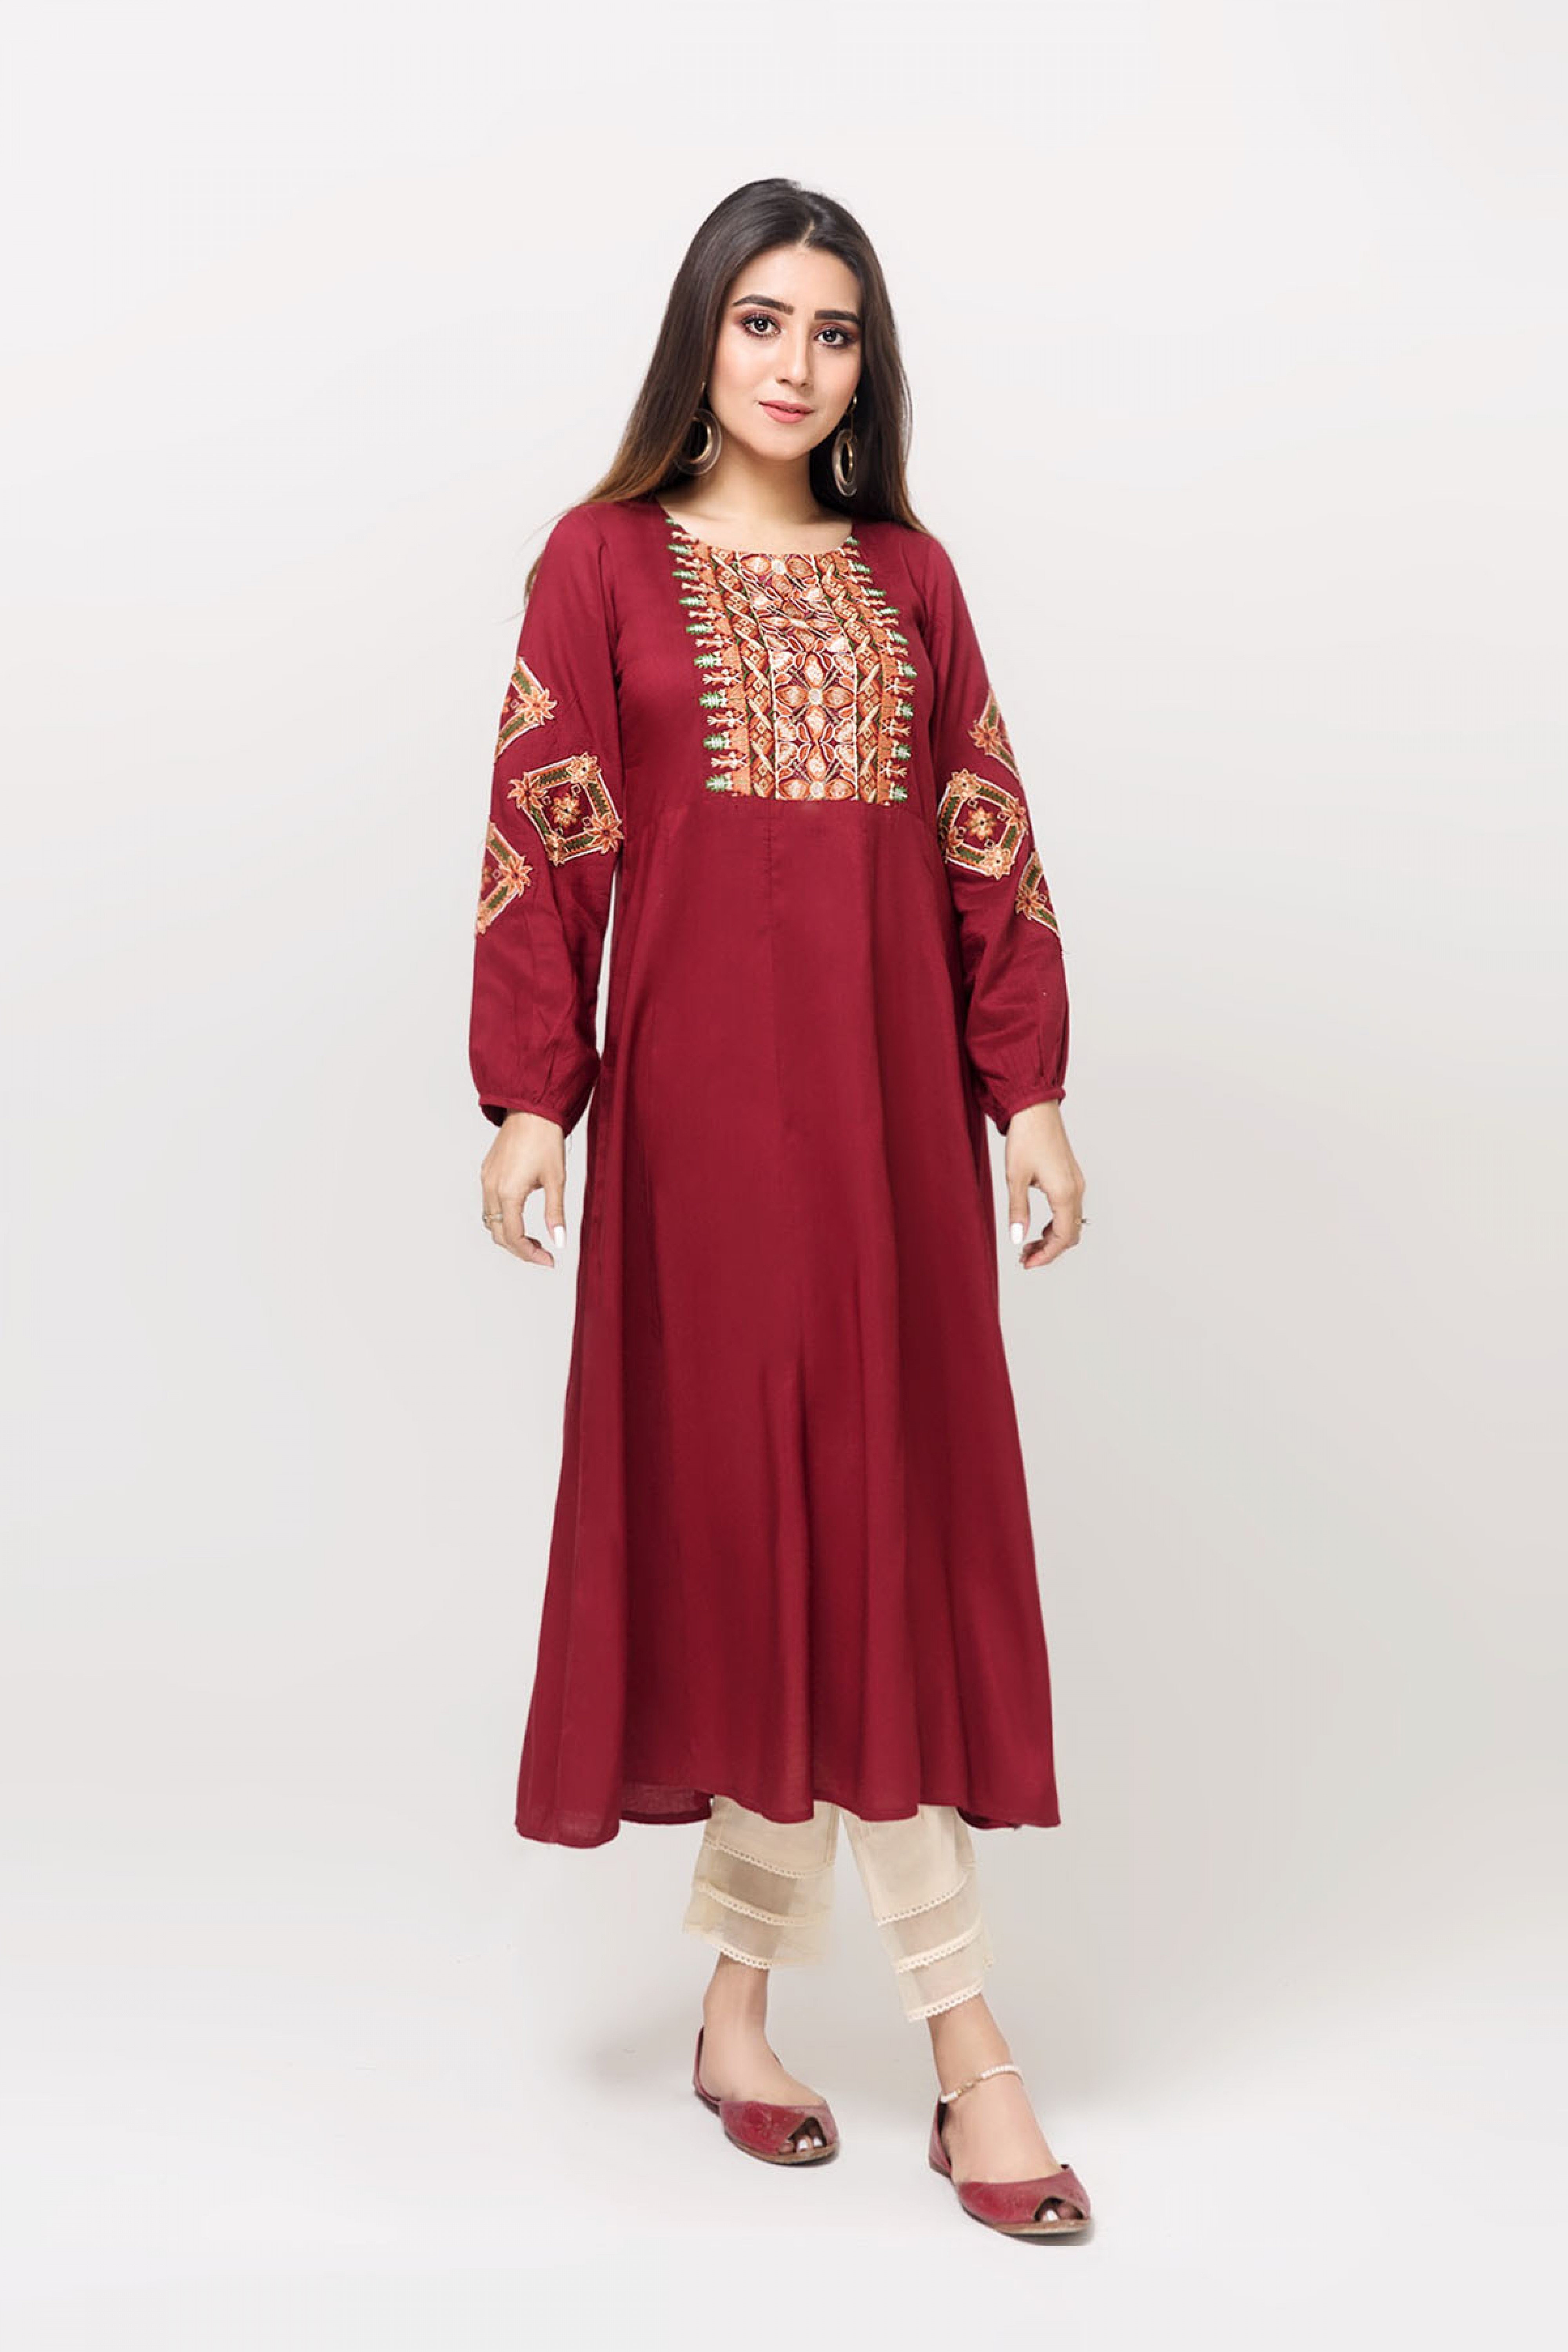 LUSCIOUS ROSE(Embroidered Frock)